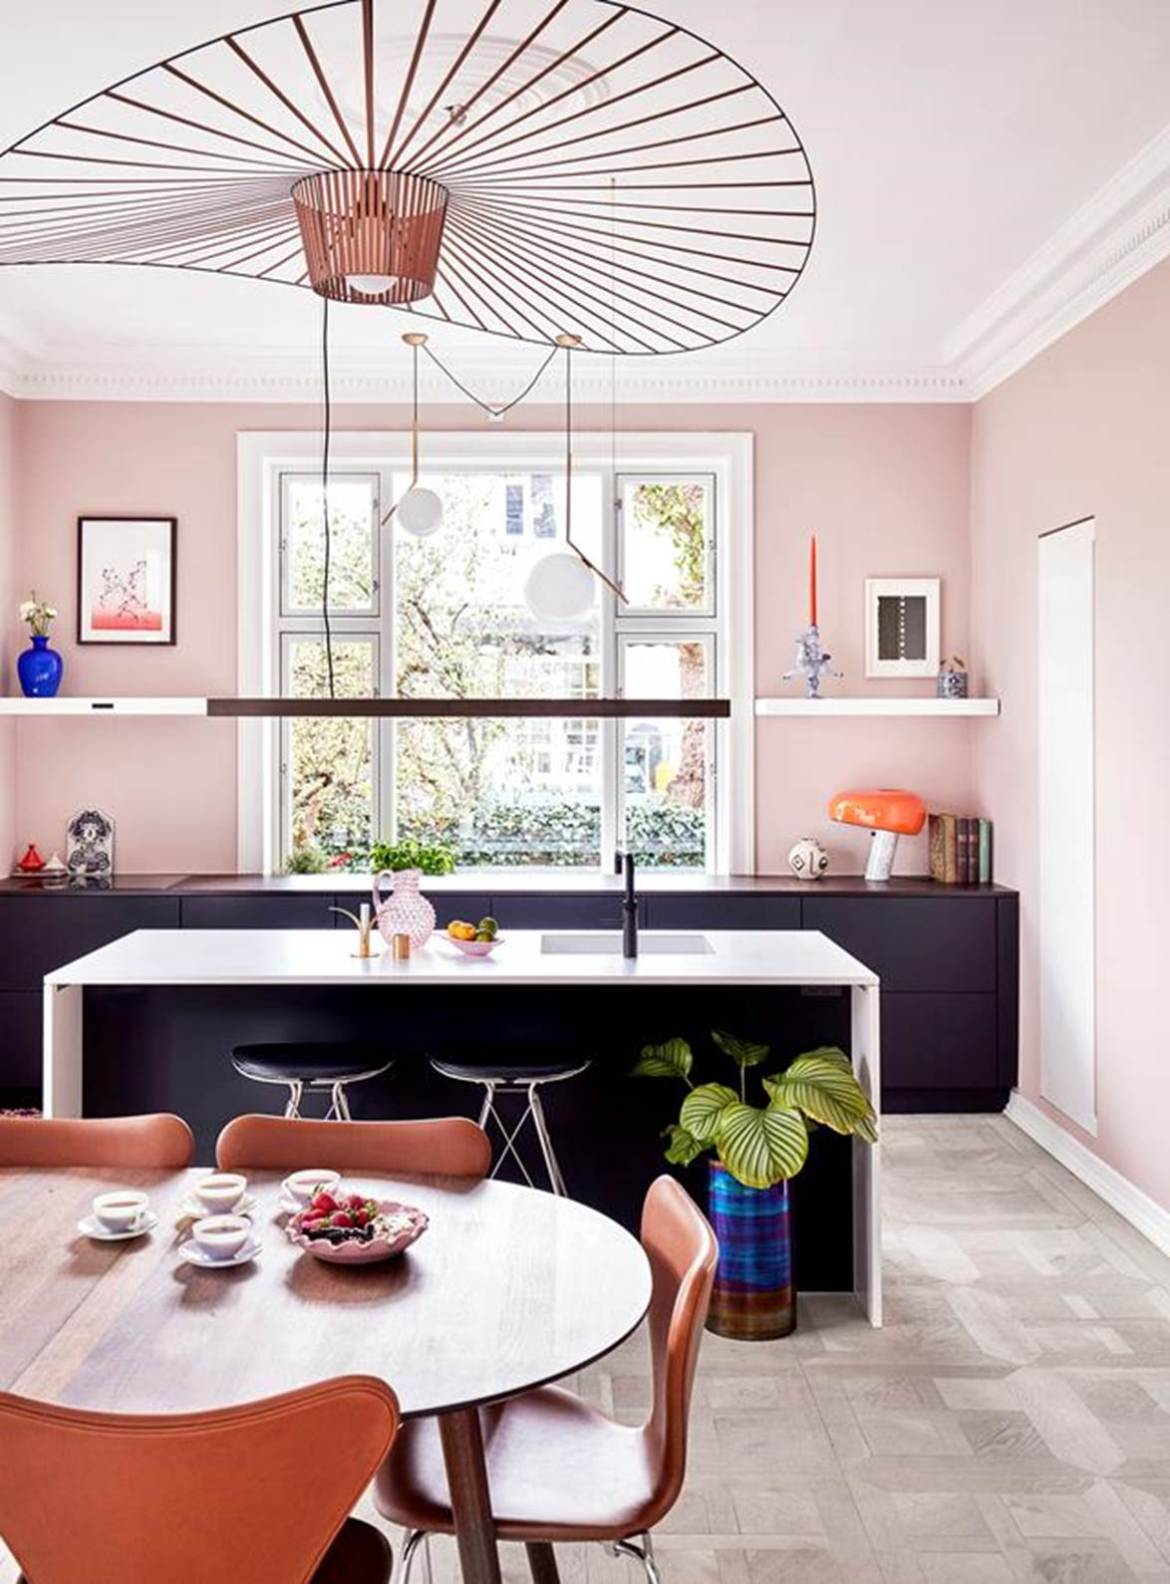 "A carefully chosen colour palette of pale pink, orange and deep blue are splashed throughout this charming kitchen in an [eclectic apartment](https://www.homestolove.com.au/colourful-eclectic-style-apartment-19184|target=""_blank"") in Frederiksberg, Denmark. The kitchen offers a wealth of colour, with black cabinetry and a low-hanging lamp to create contrast."